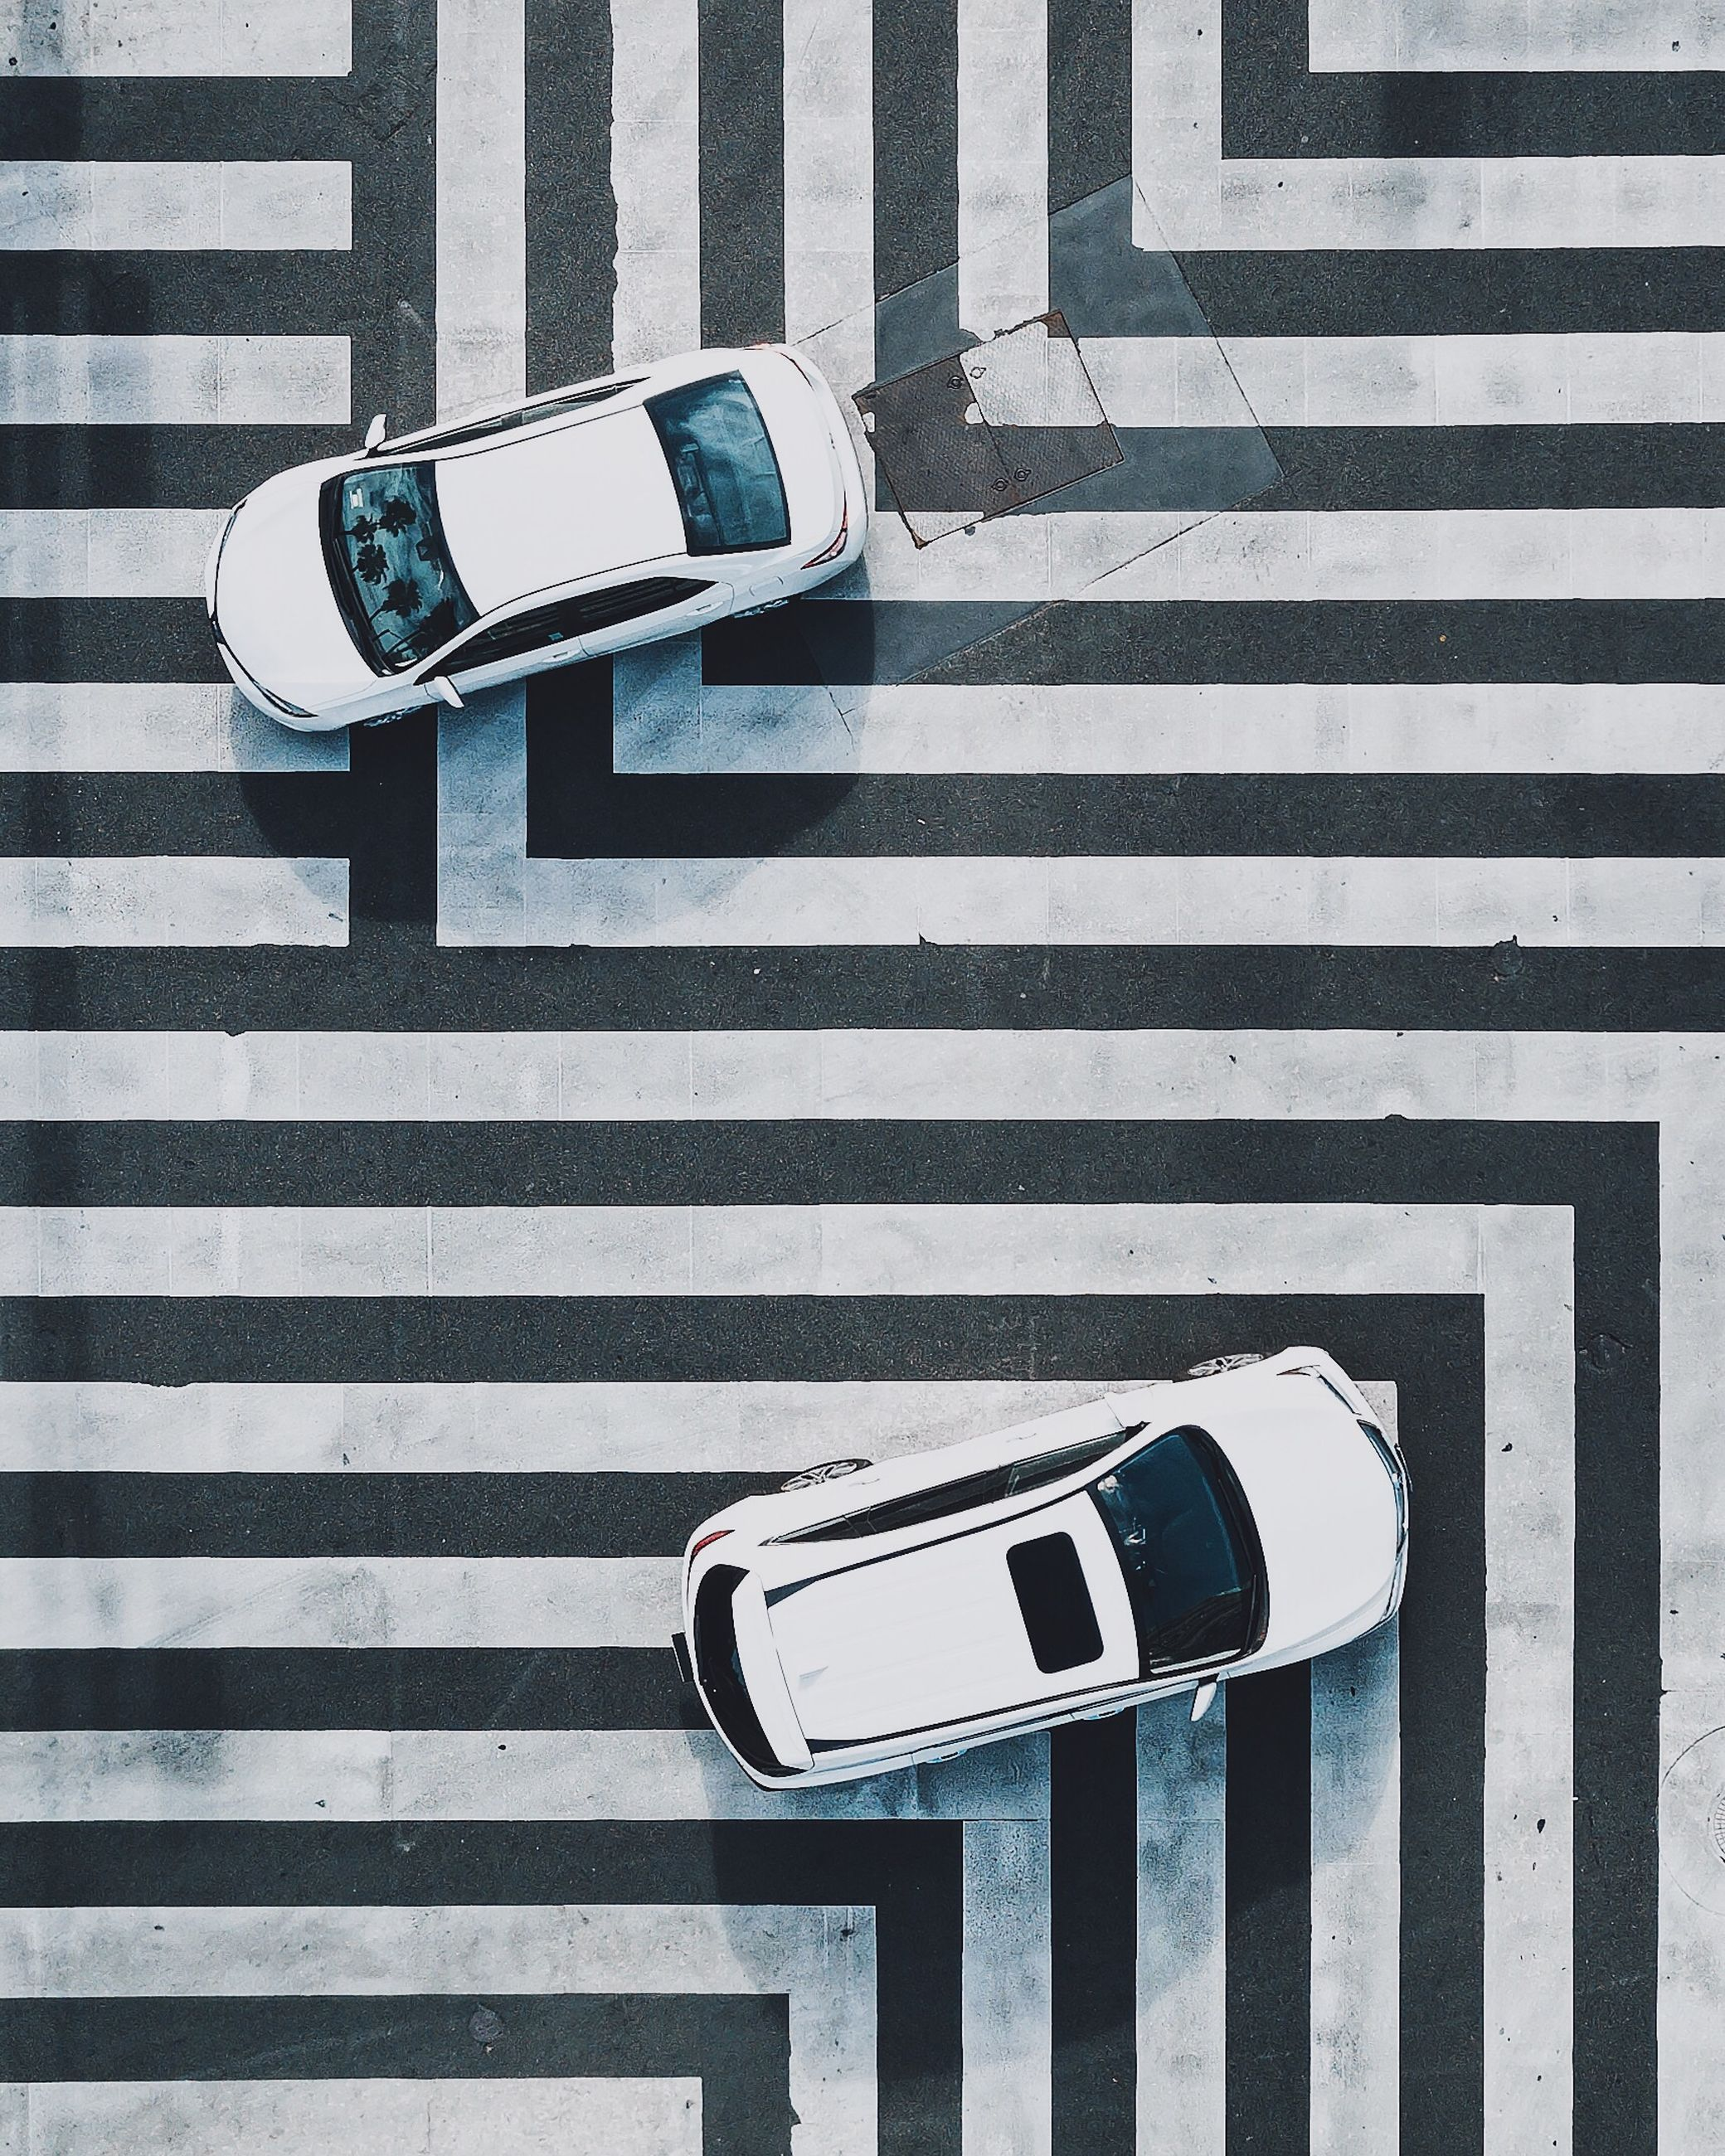 high angle view, sign, symbol, crosswalk, transportation, zebra crossing, crossing, road marking, communication, marking, technology, street, city, road, day, mode of transportation, land vehicle, striped, motor vehicle, car, no people, outdoors